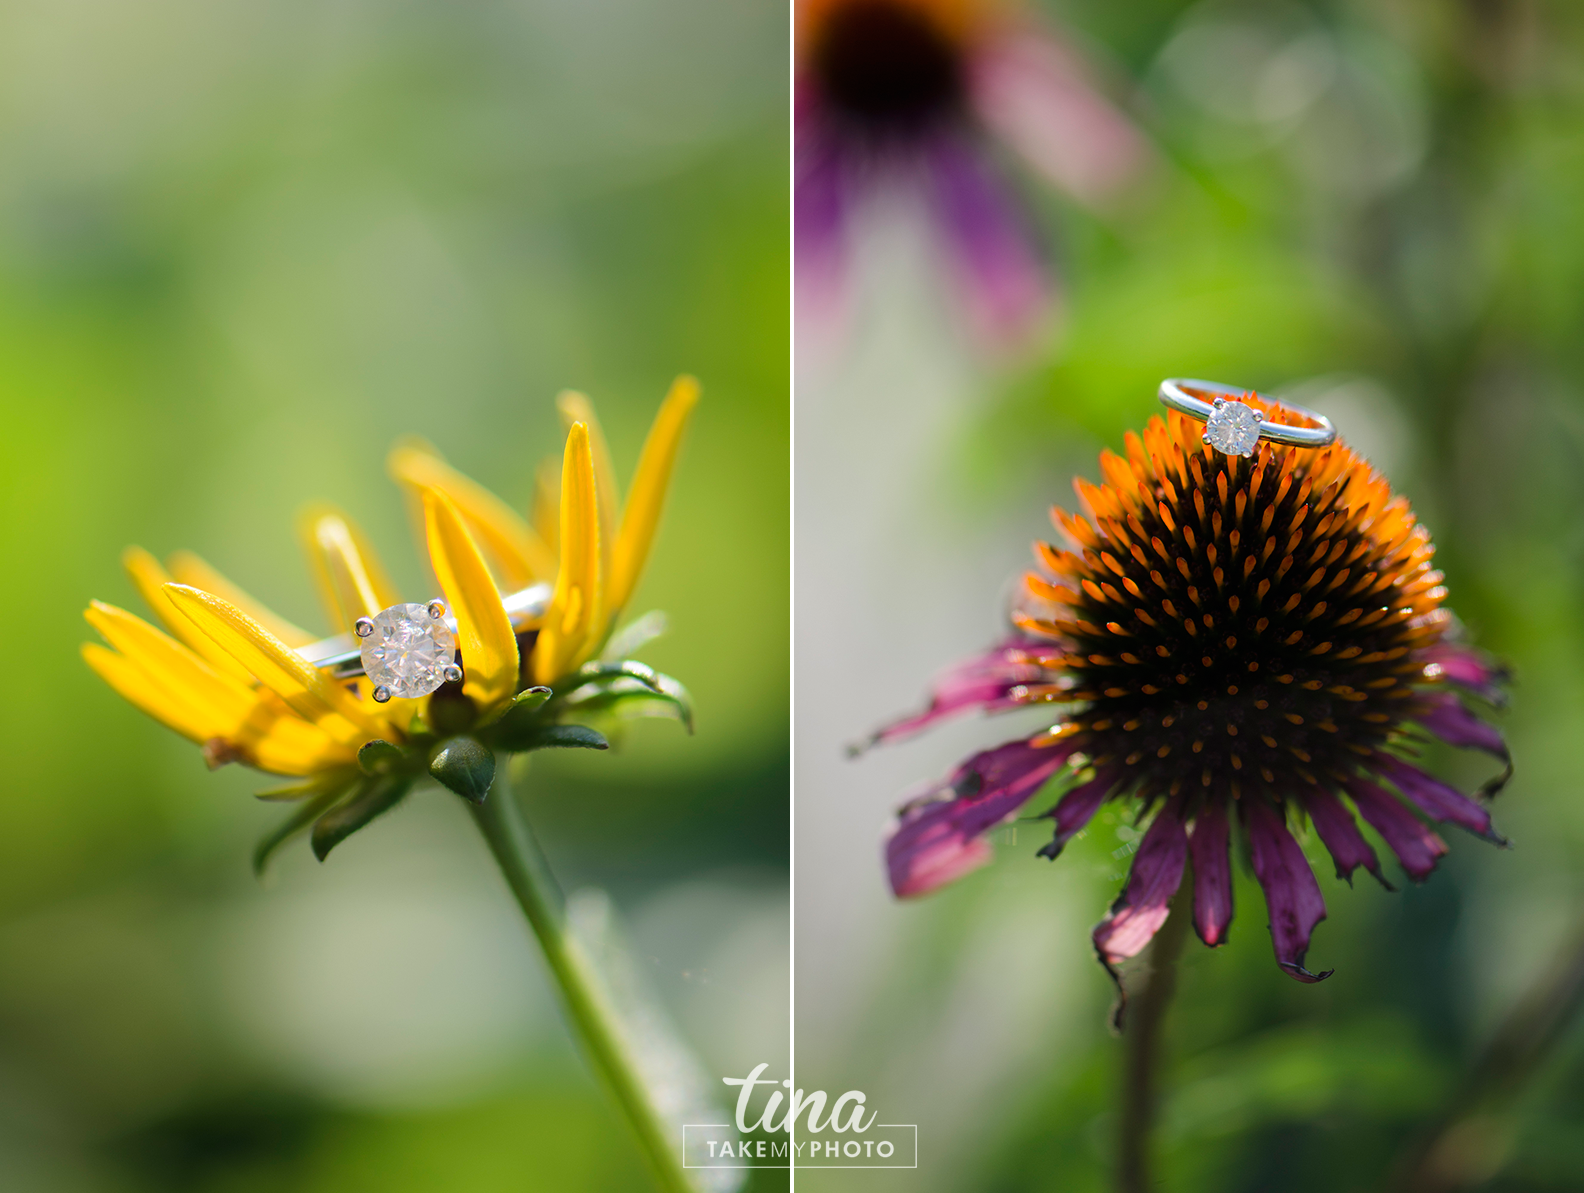 Macro-Nikon-Wedding-Ring-Bling-Diamond-Daisy-Flower-Purple-Yellow-Engagement-Photographer-Maryland-Virginia-Summer